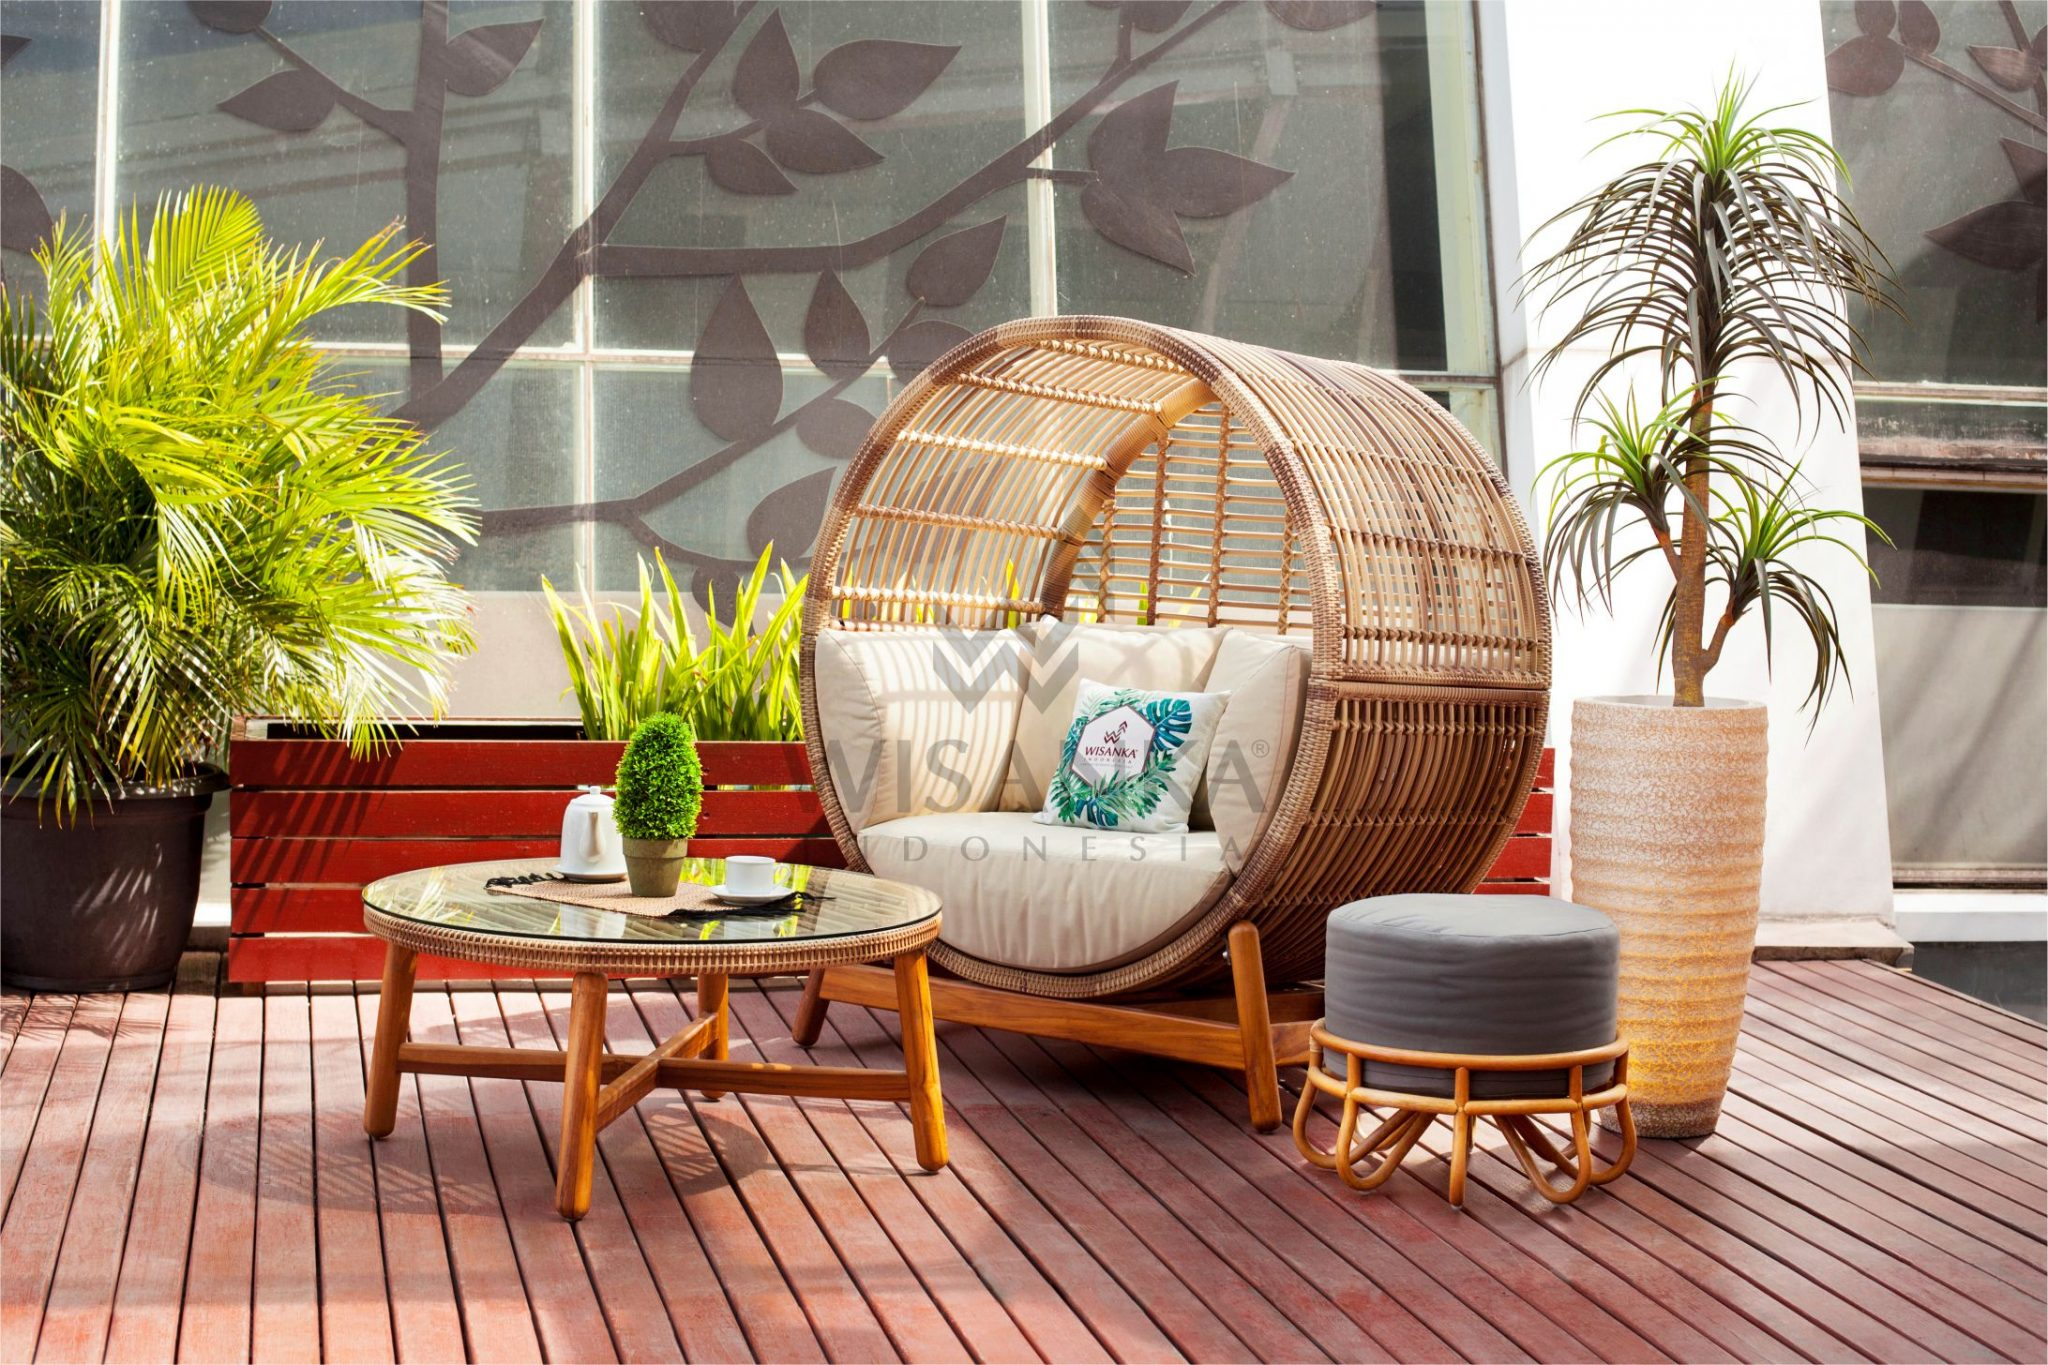 Orza Outdoor Rattan Daybed Set Synthetic Rattan Furniture